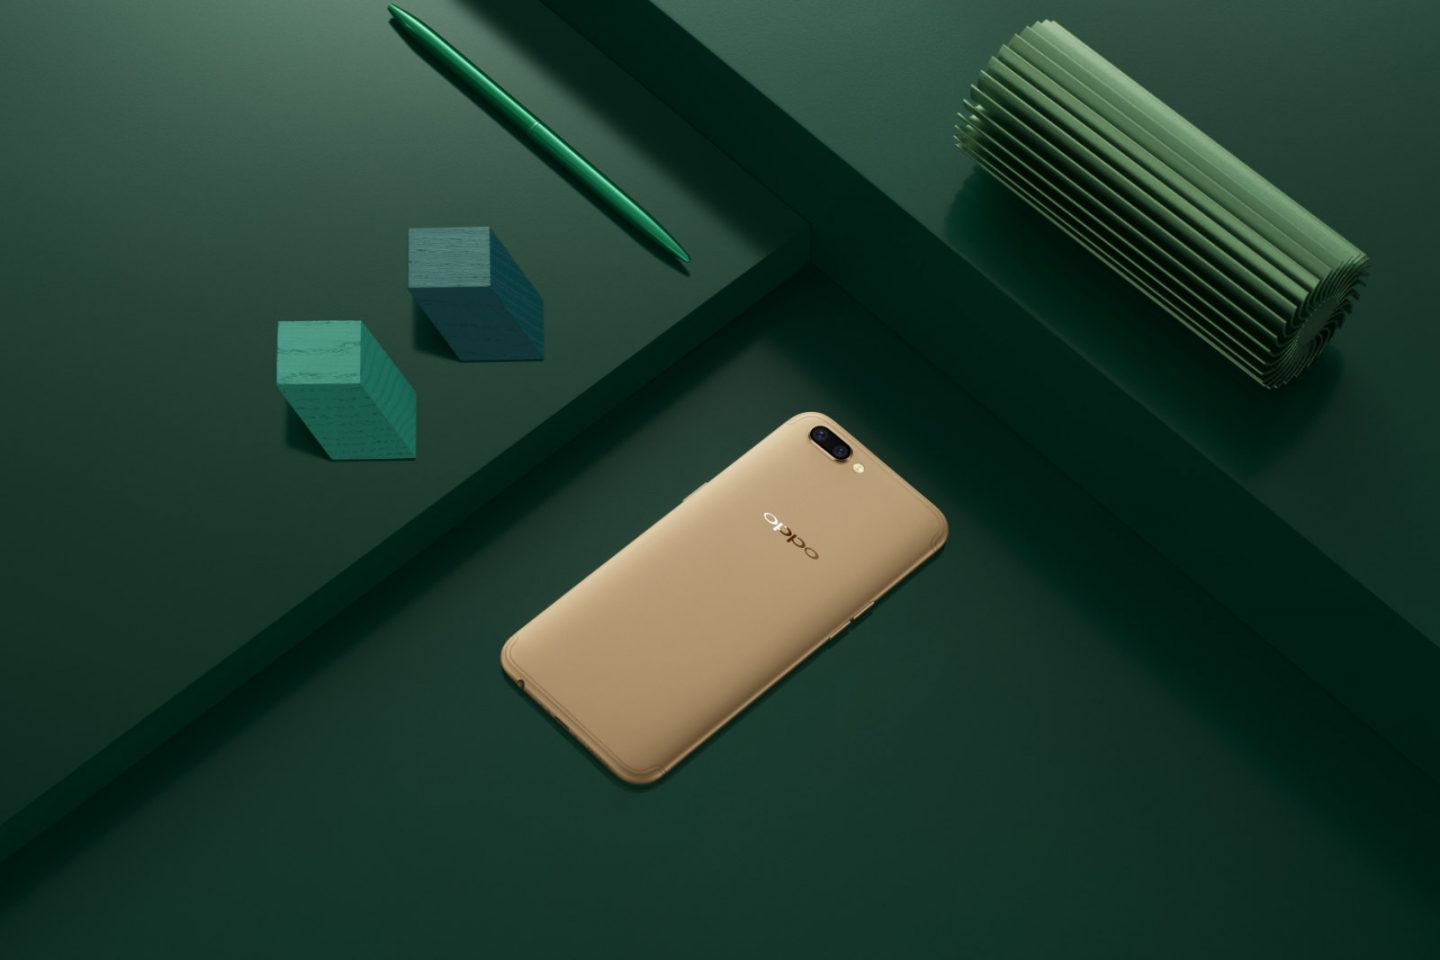 Oppo launches R11 in New Zealand, with sales beginning August 28